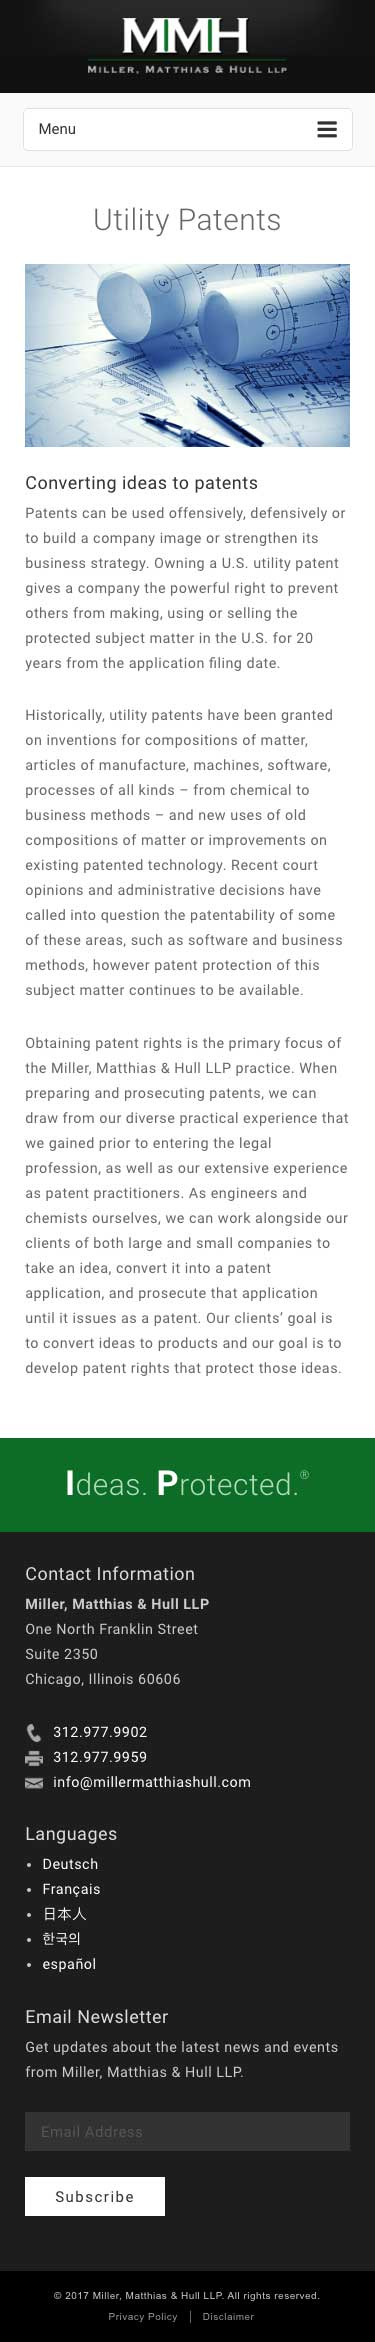 Miller Matthias & Hull - Utility Patents - iPhone View